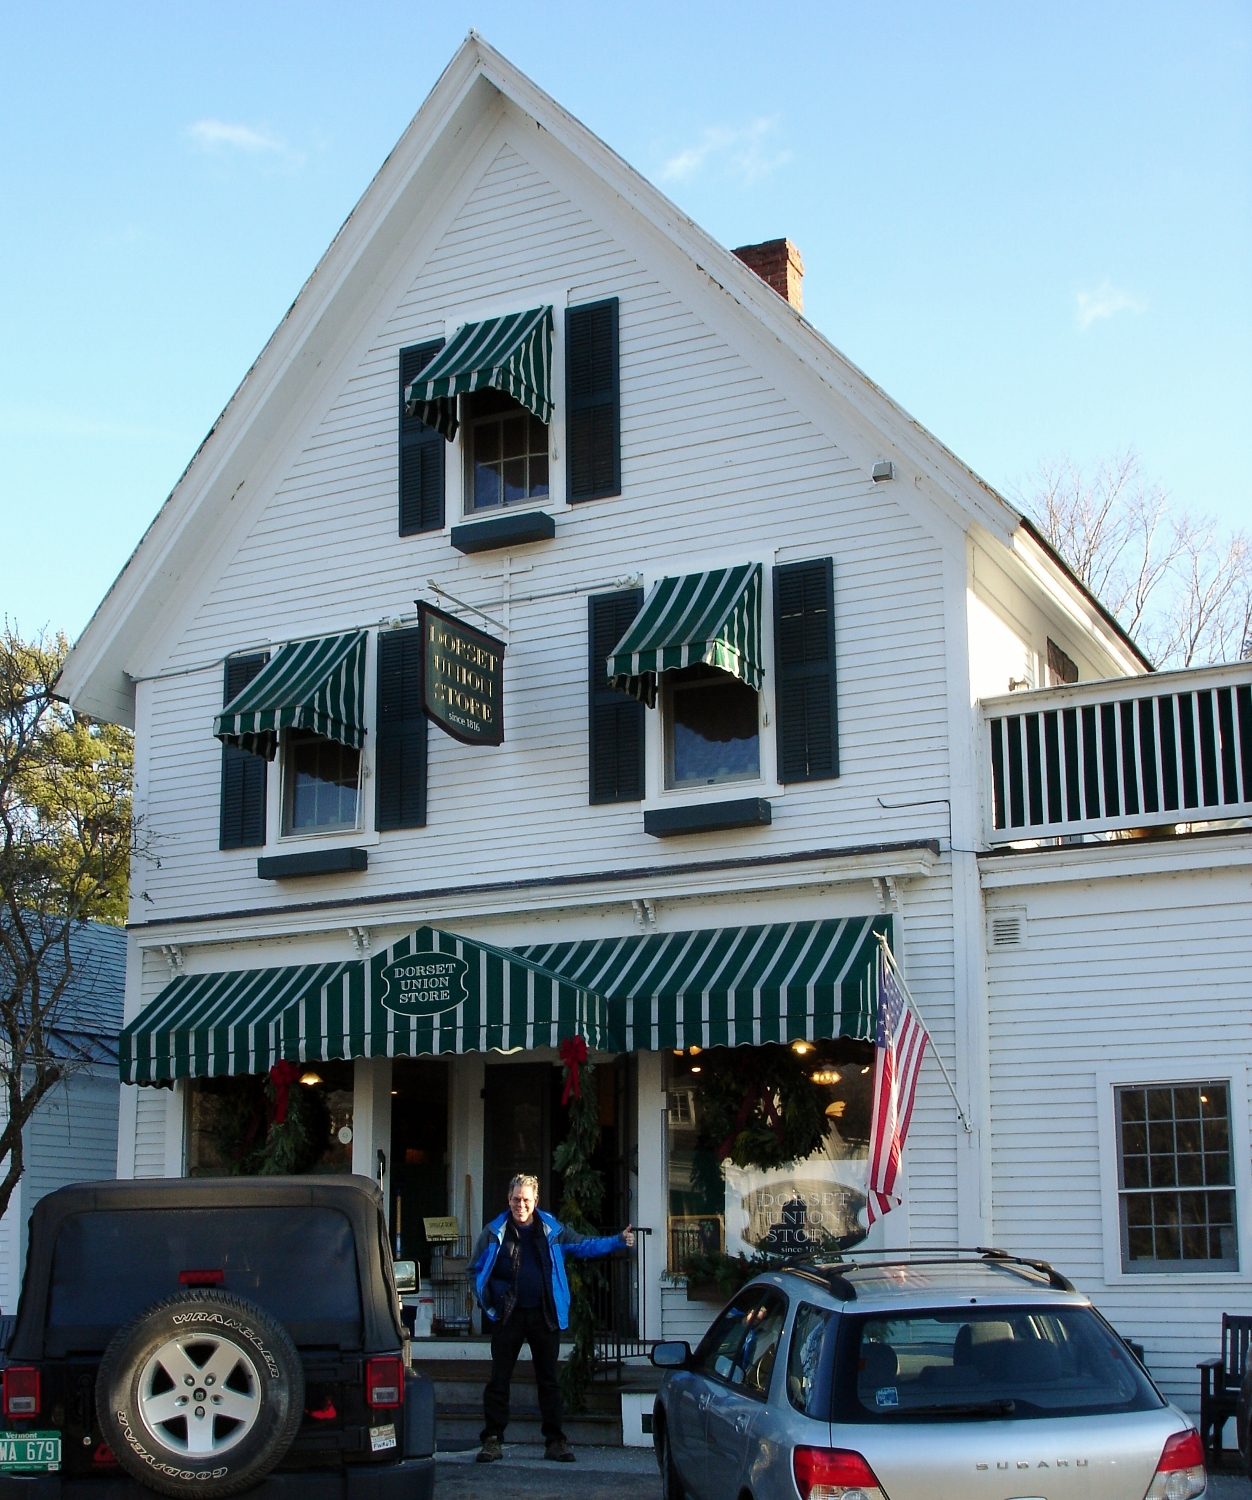 Dorset Union Store, Dorset VT – Left at the Fork